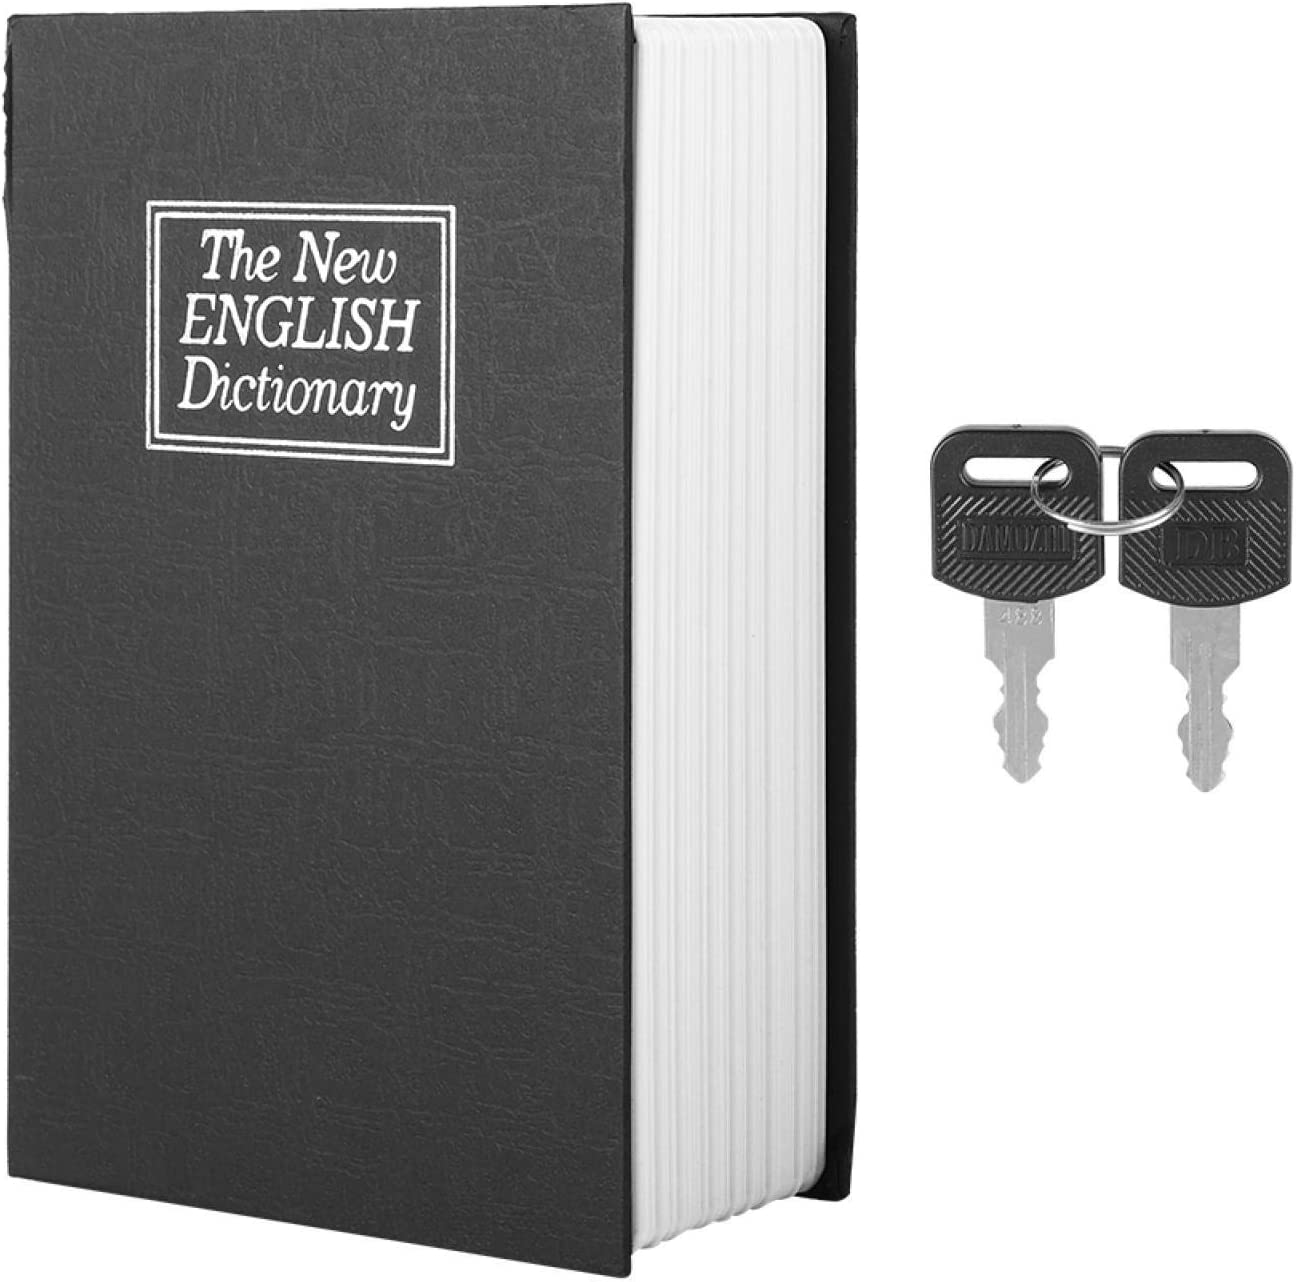 Black English Dictionary Book Safe Box 67% OFF of fixed price Keys with 2 Max 76% OFF Sec Portable